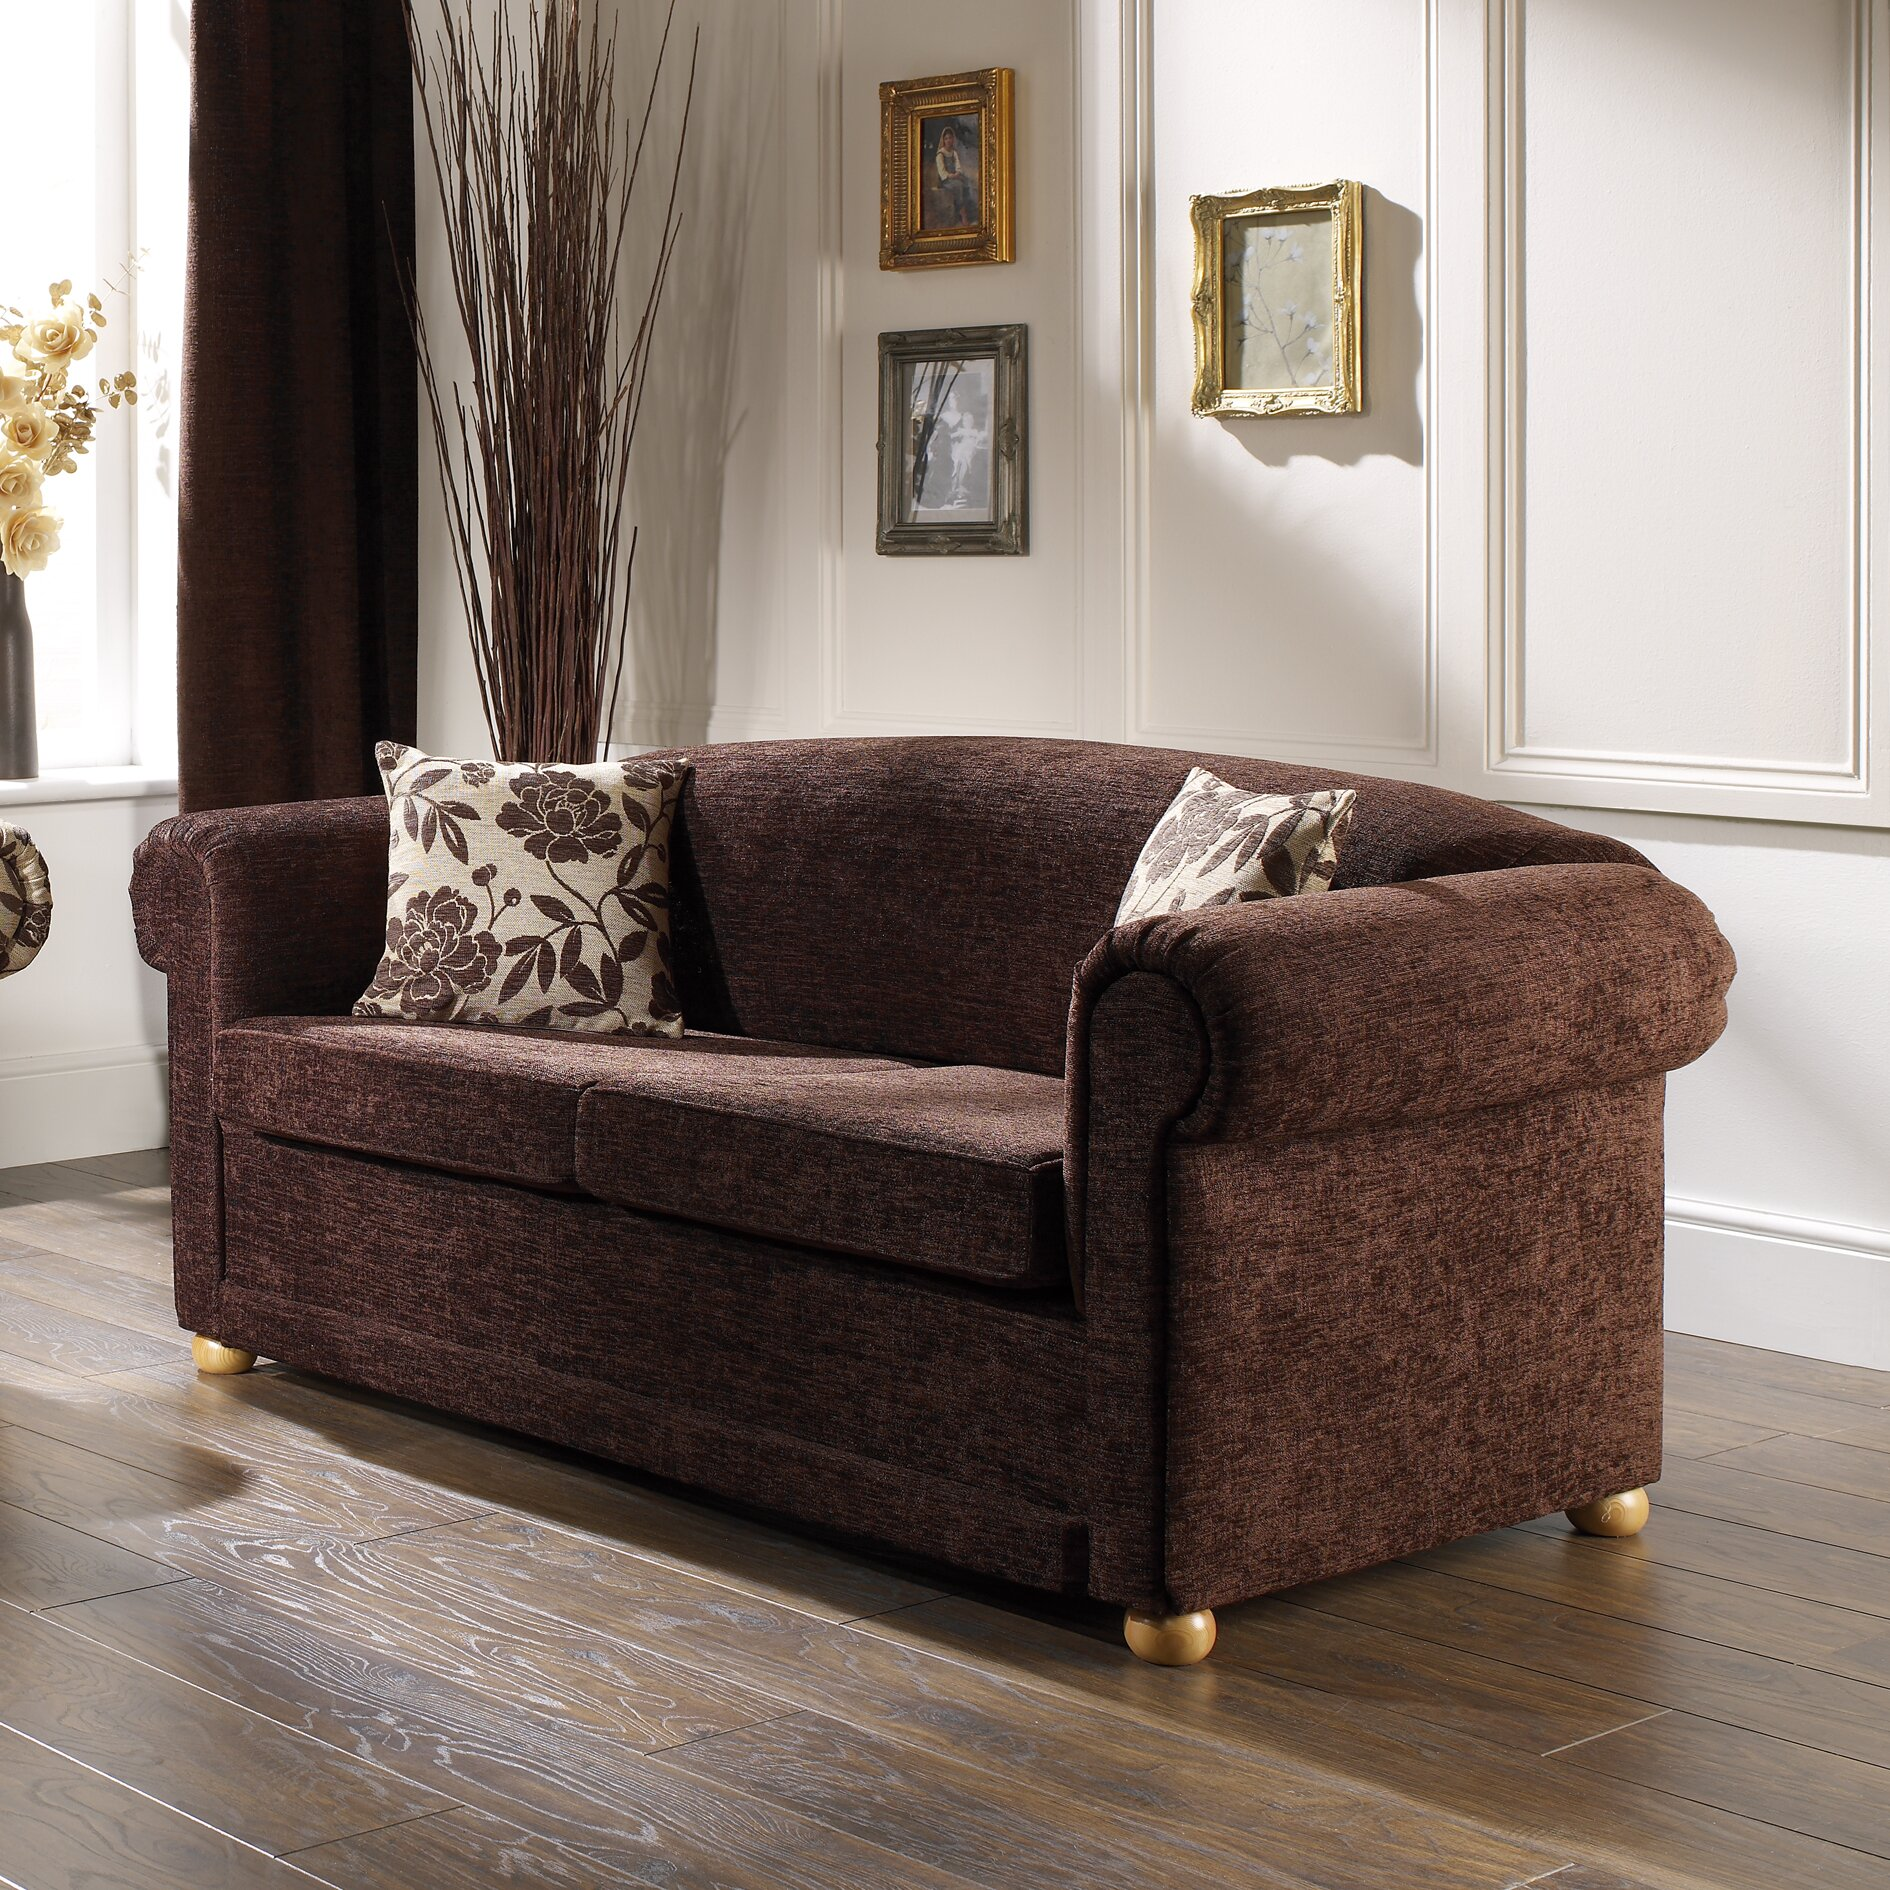 churchfield sofa bed 2 seater fold out sofa bed - Fold Out Sleeper Chair